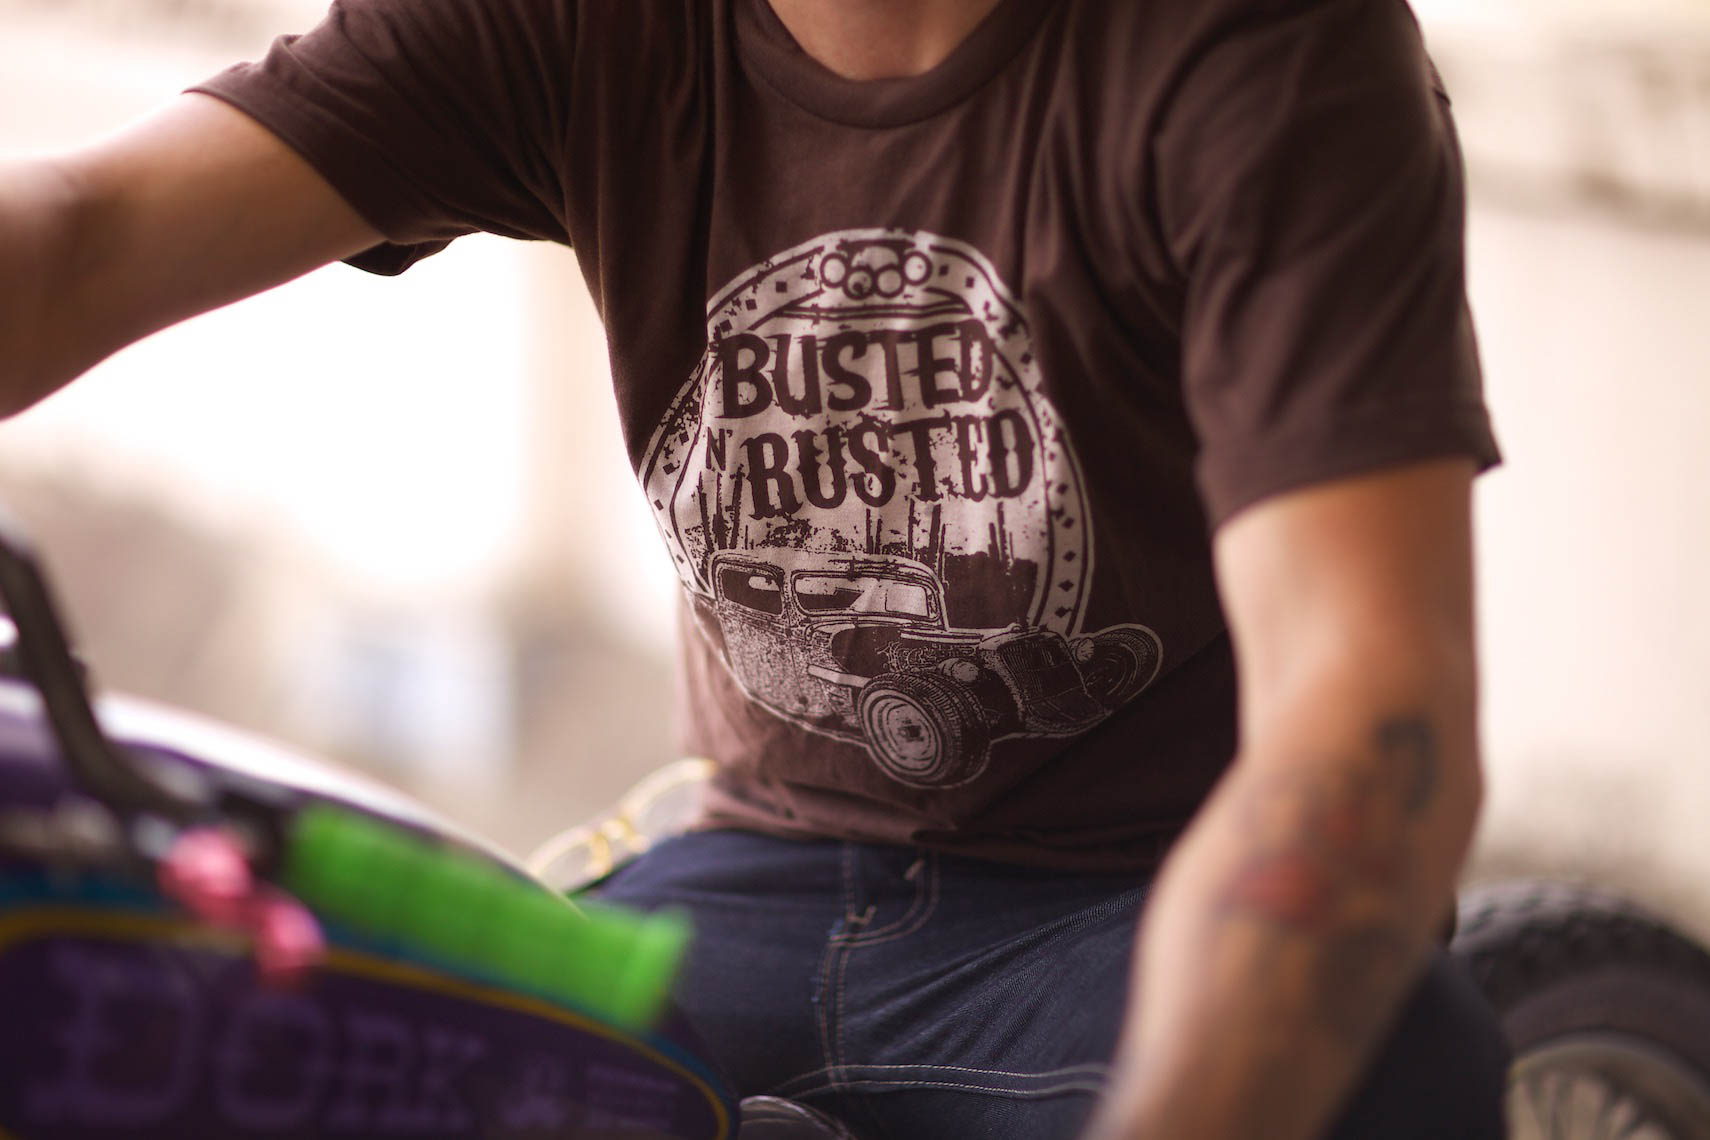 test-pilot-wear-shirts-jason-risner-photography-9192